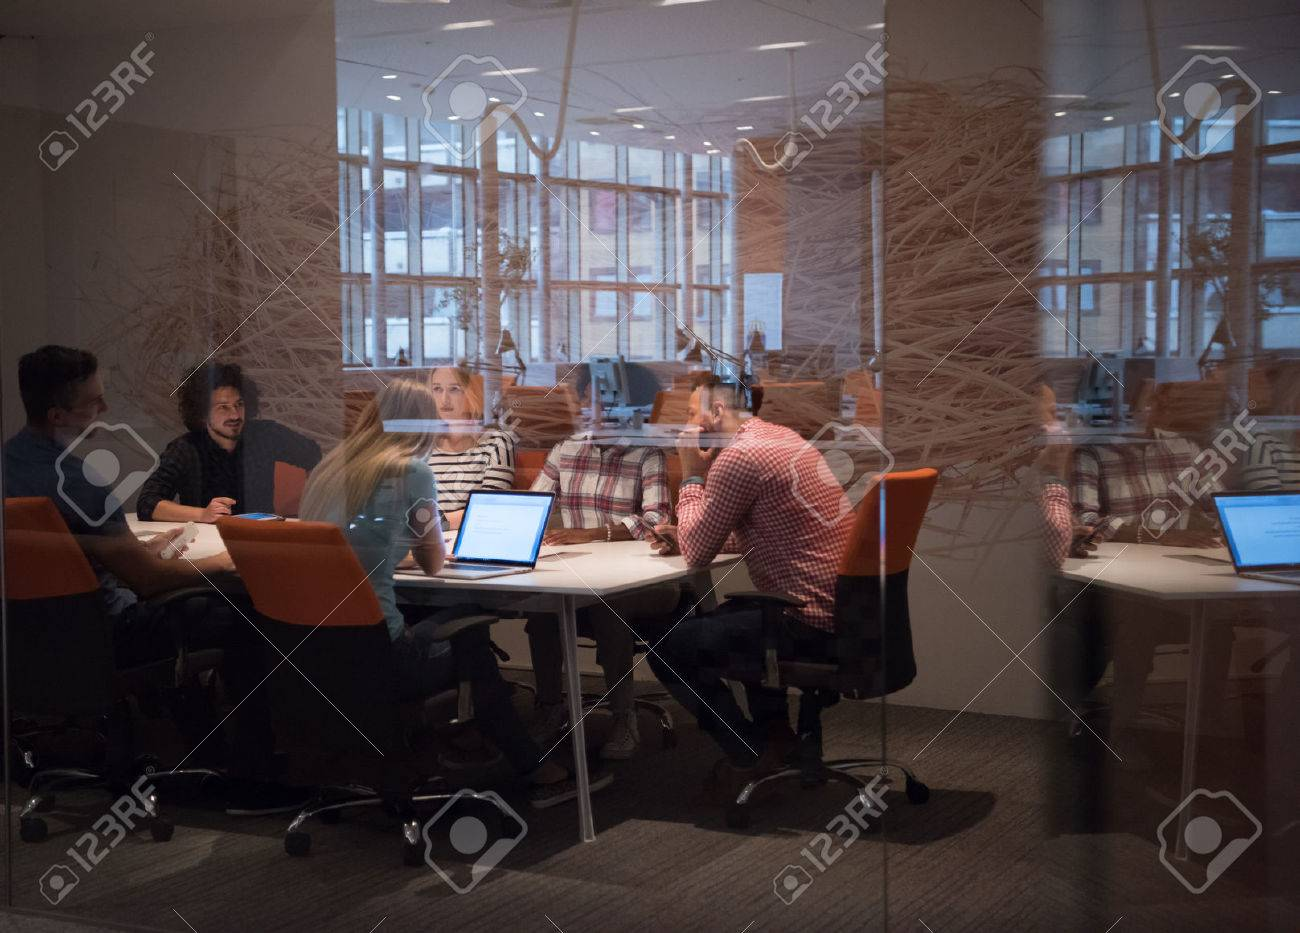 Multiethnic startup business team on meeting in modern bright office interior brainstorming, working on laptop and tablet computer - 71446408